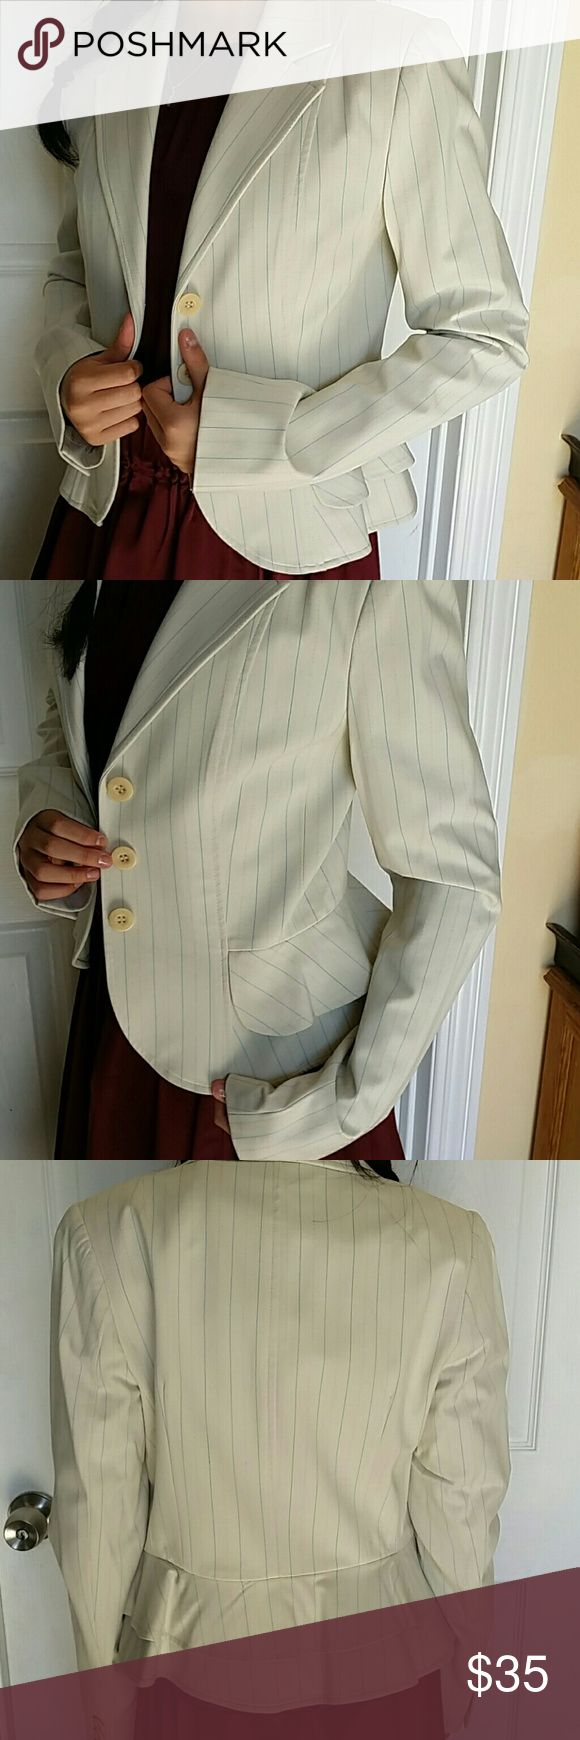 """Laundry Shelli segal blazer striped O Excellent condition  Never been worn Size O Long sleeves is 24.5"""", shoulder to hem is 21"""" Ruffle bottom  Business meeting style   *offer welcome  *Smoke-free home Laundry By Shelli Segal Jackets & Coats Blazers"""